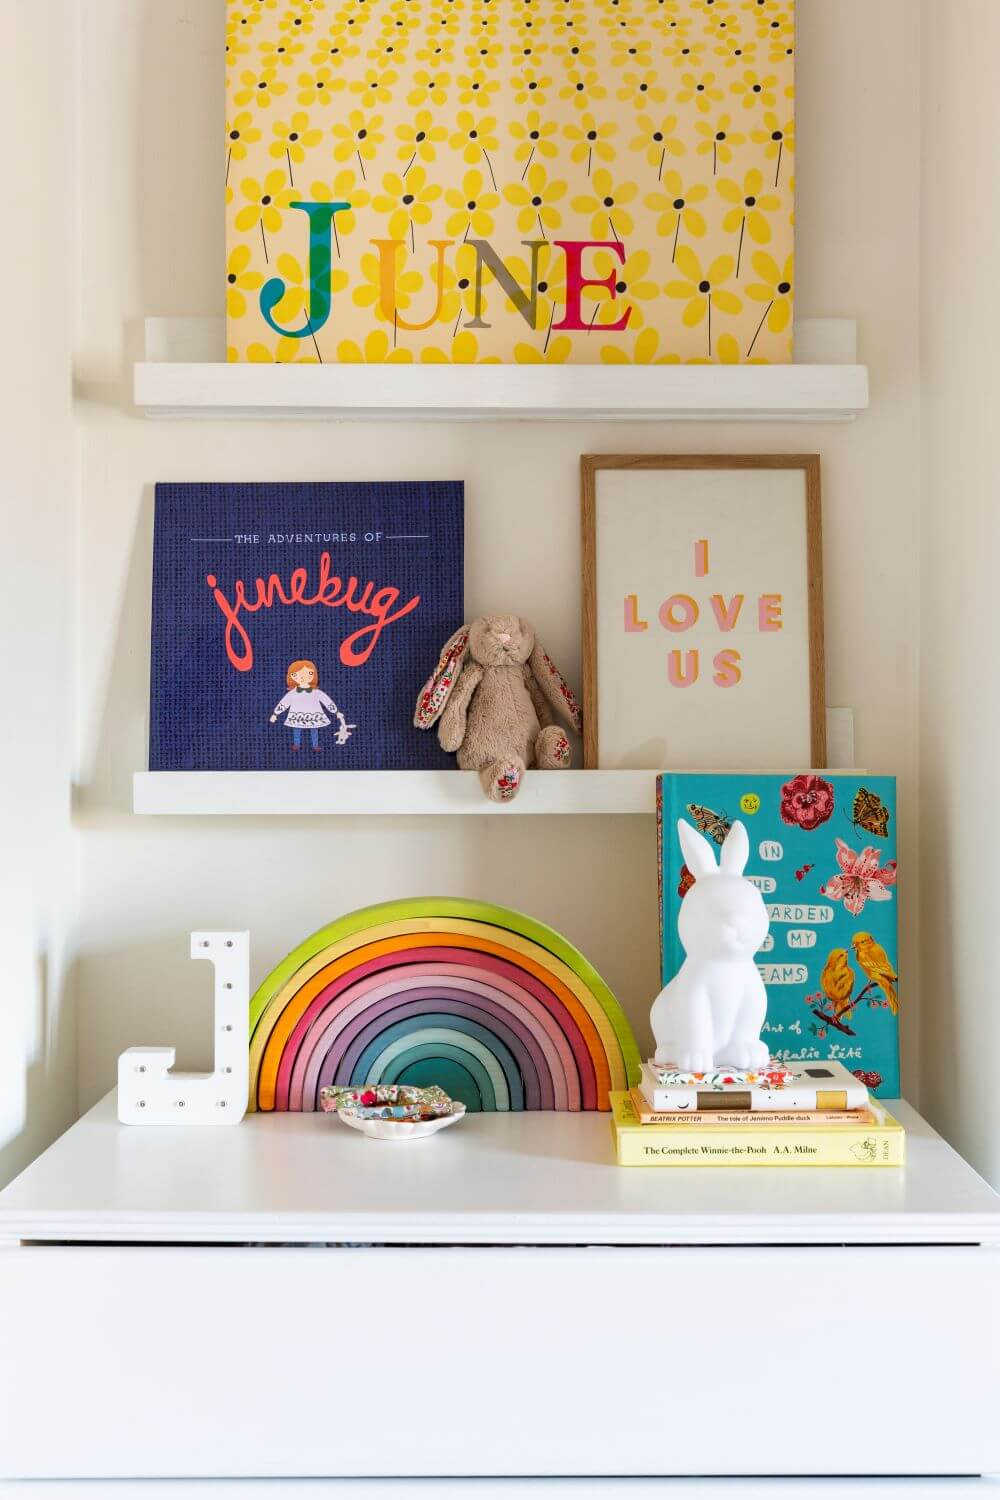 Decorate with Pink Home tour: diy picture shelves ,made form mdf wood and painted white. Styles with colourful decor.